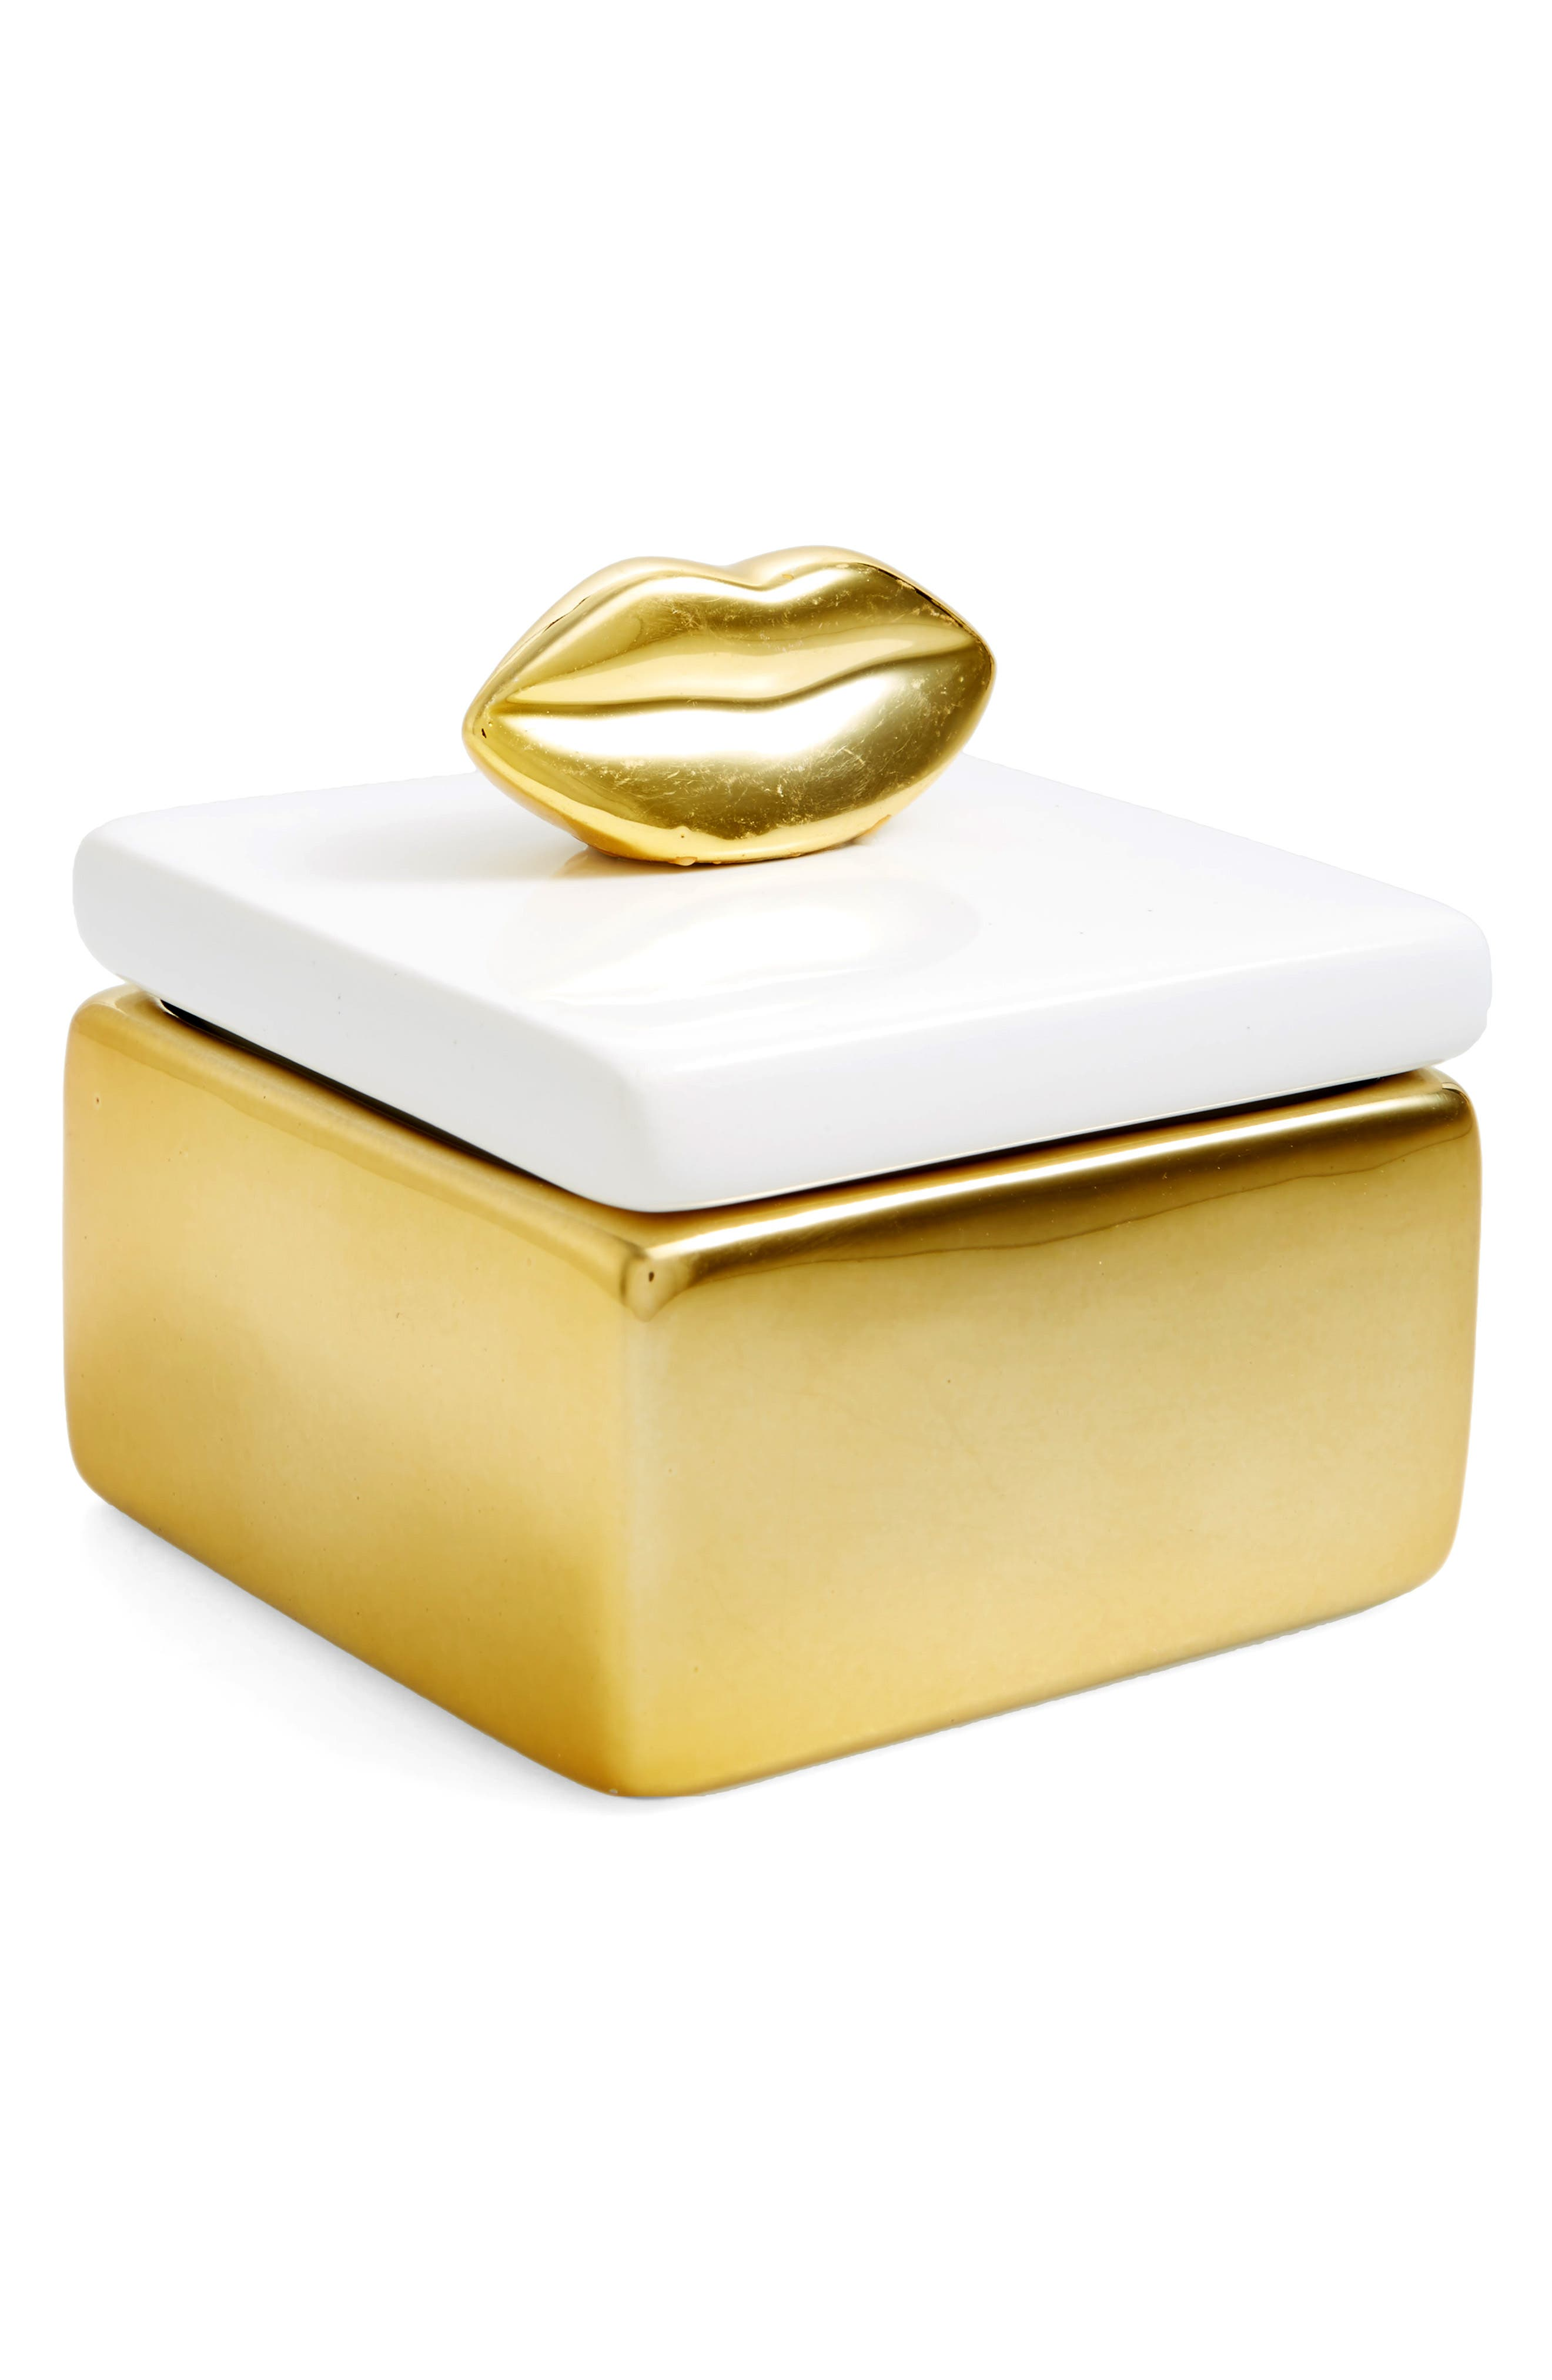 Lips Trinket Box,                             Main thumbnail 1, color,                             Gold